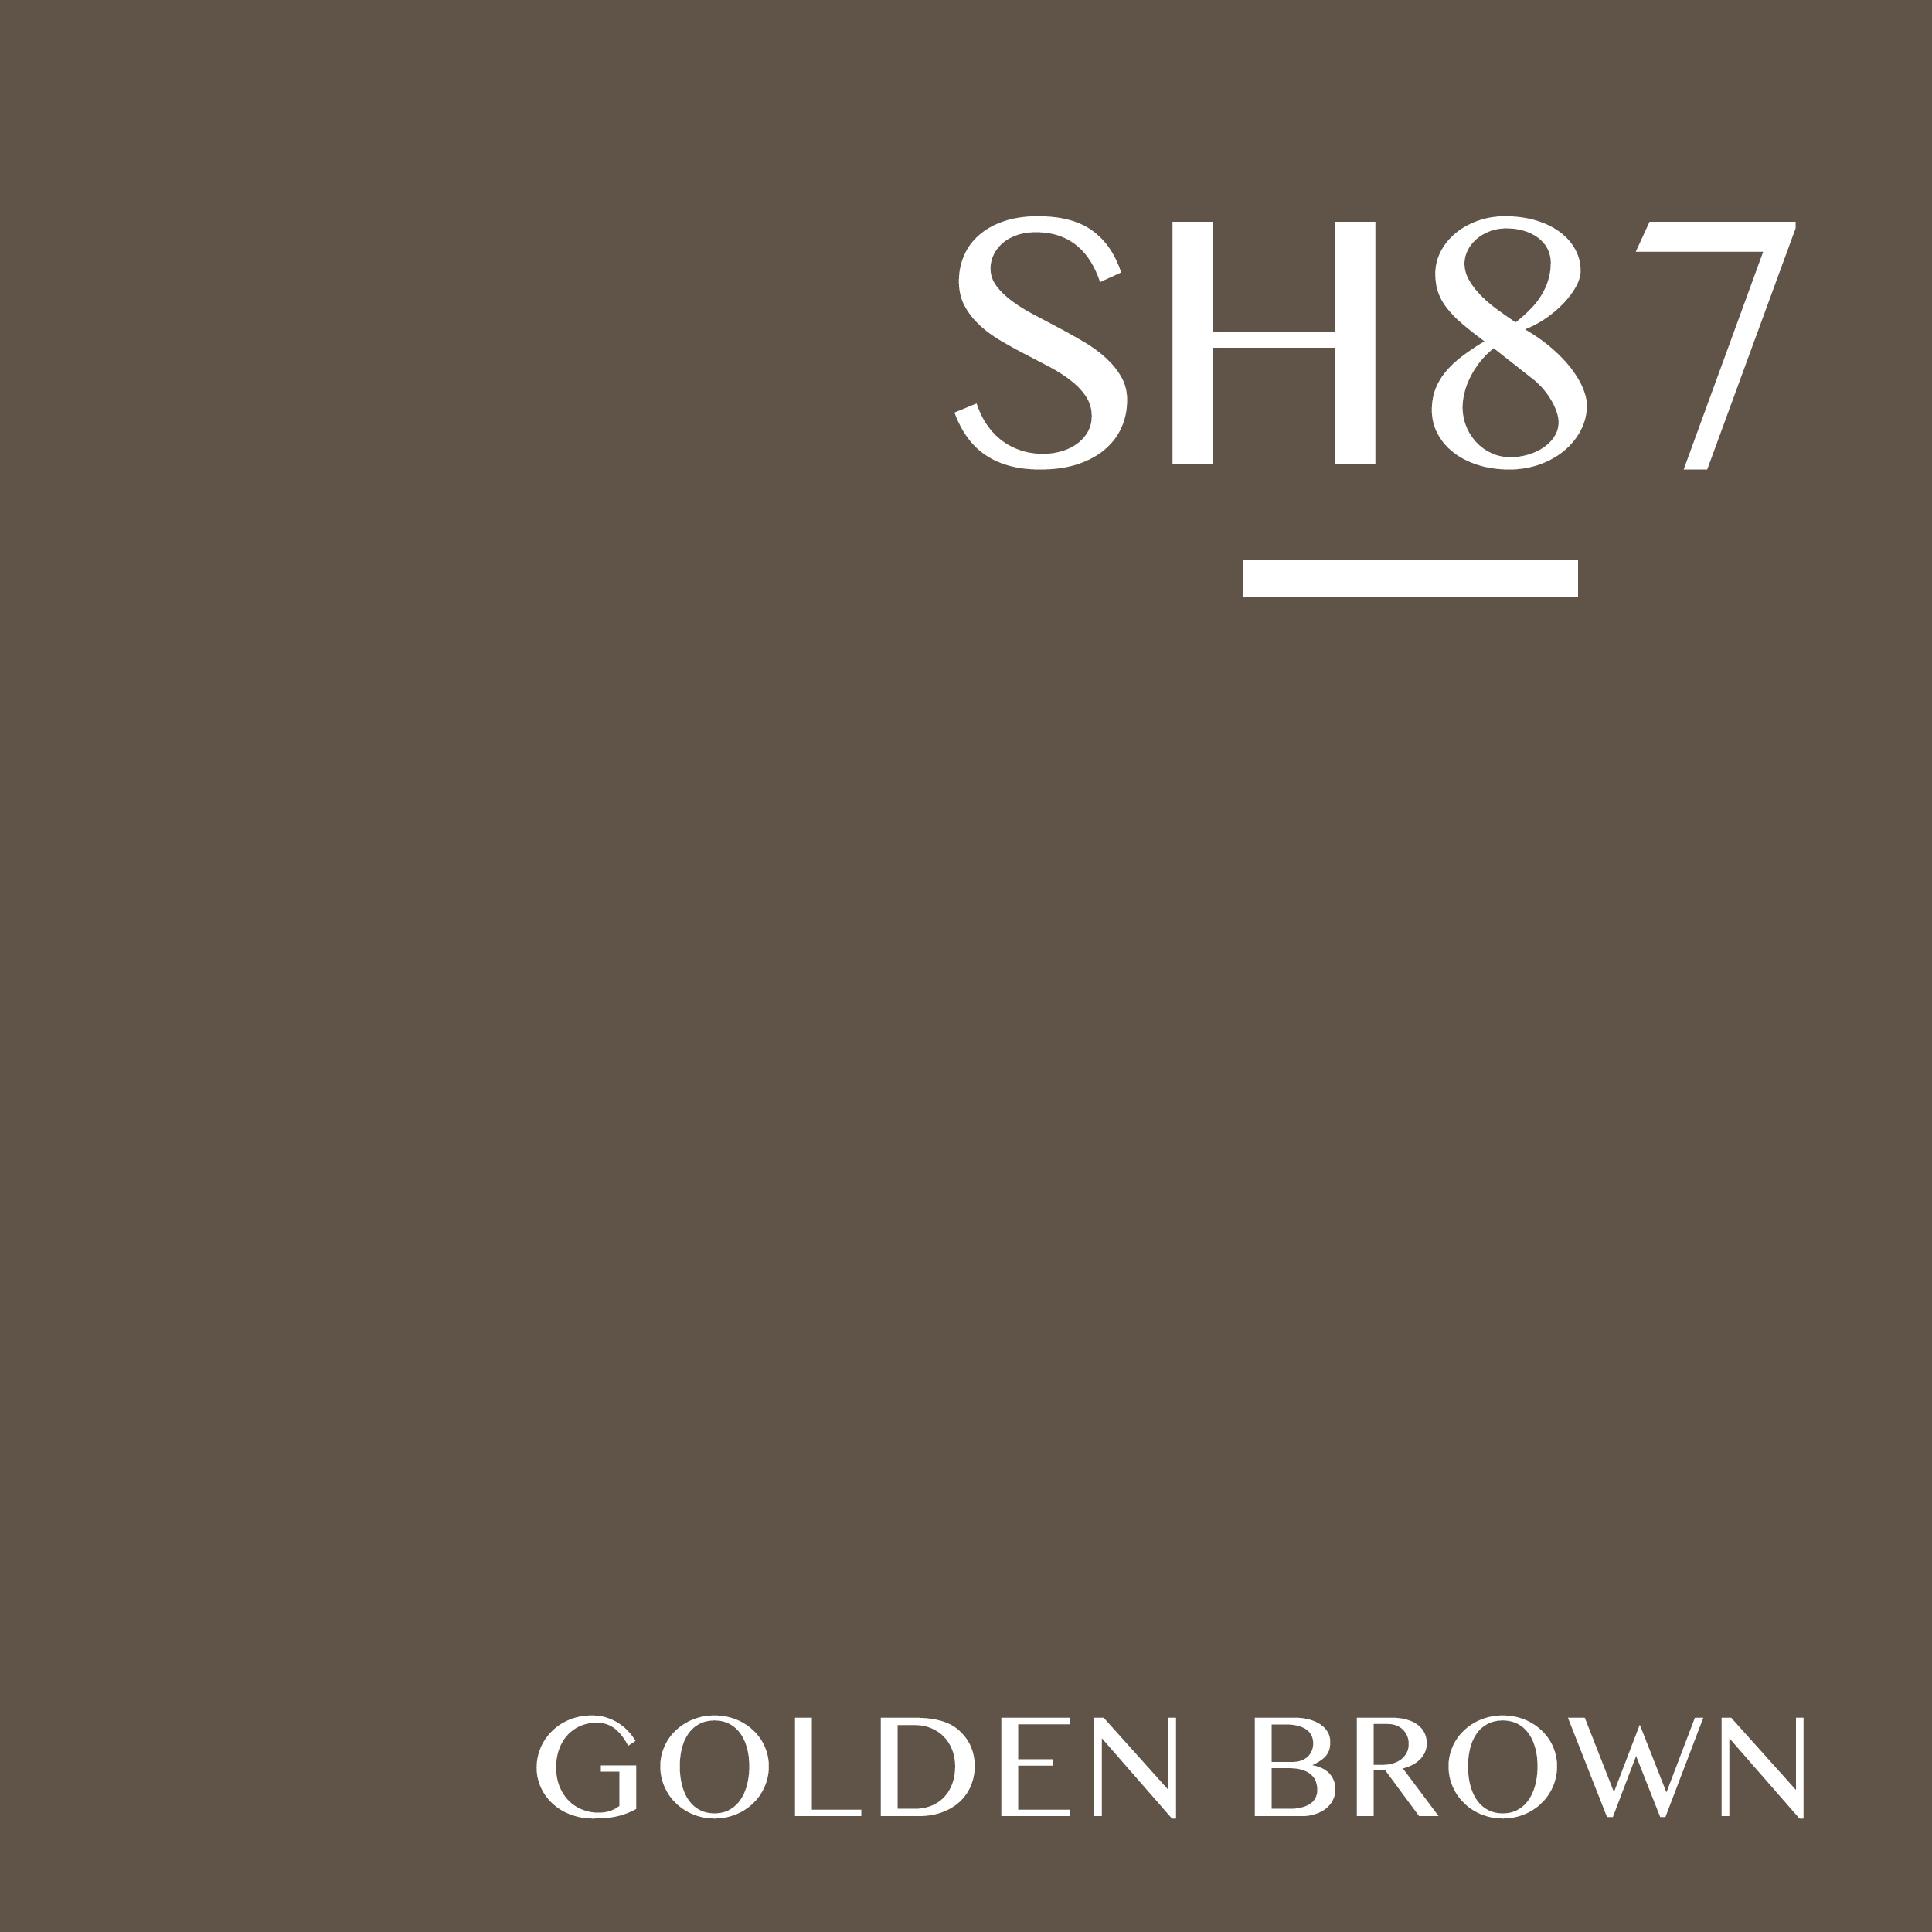 SHADE collection color blocks87